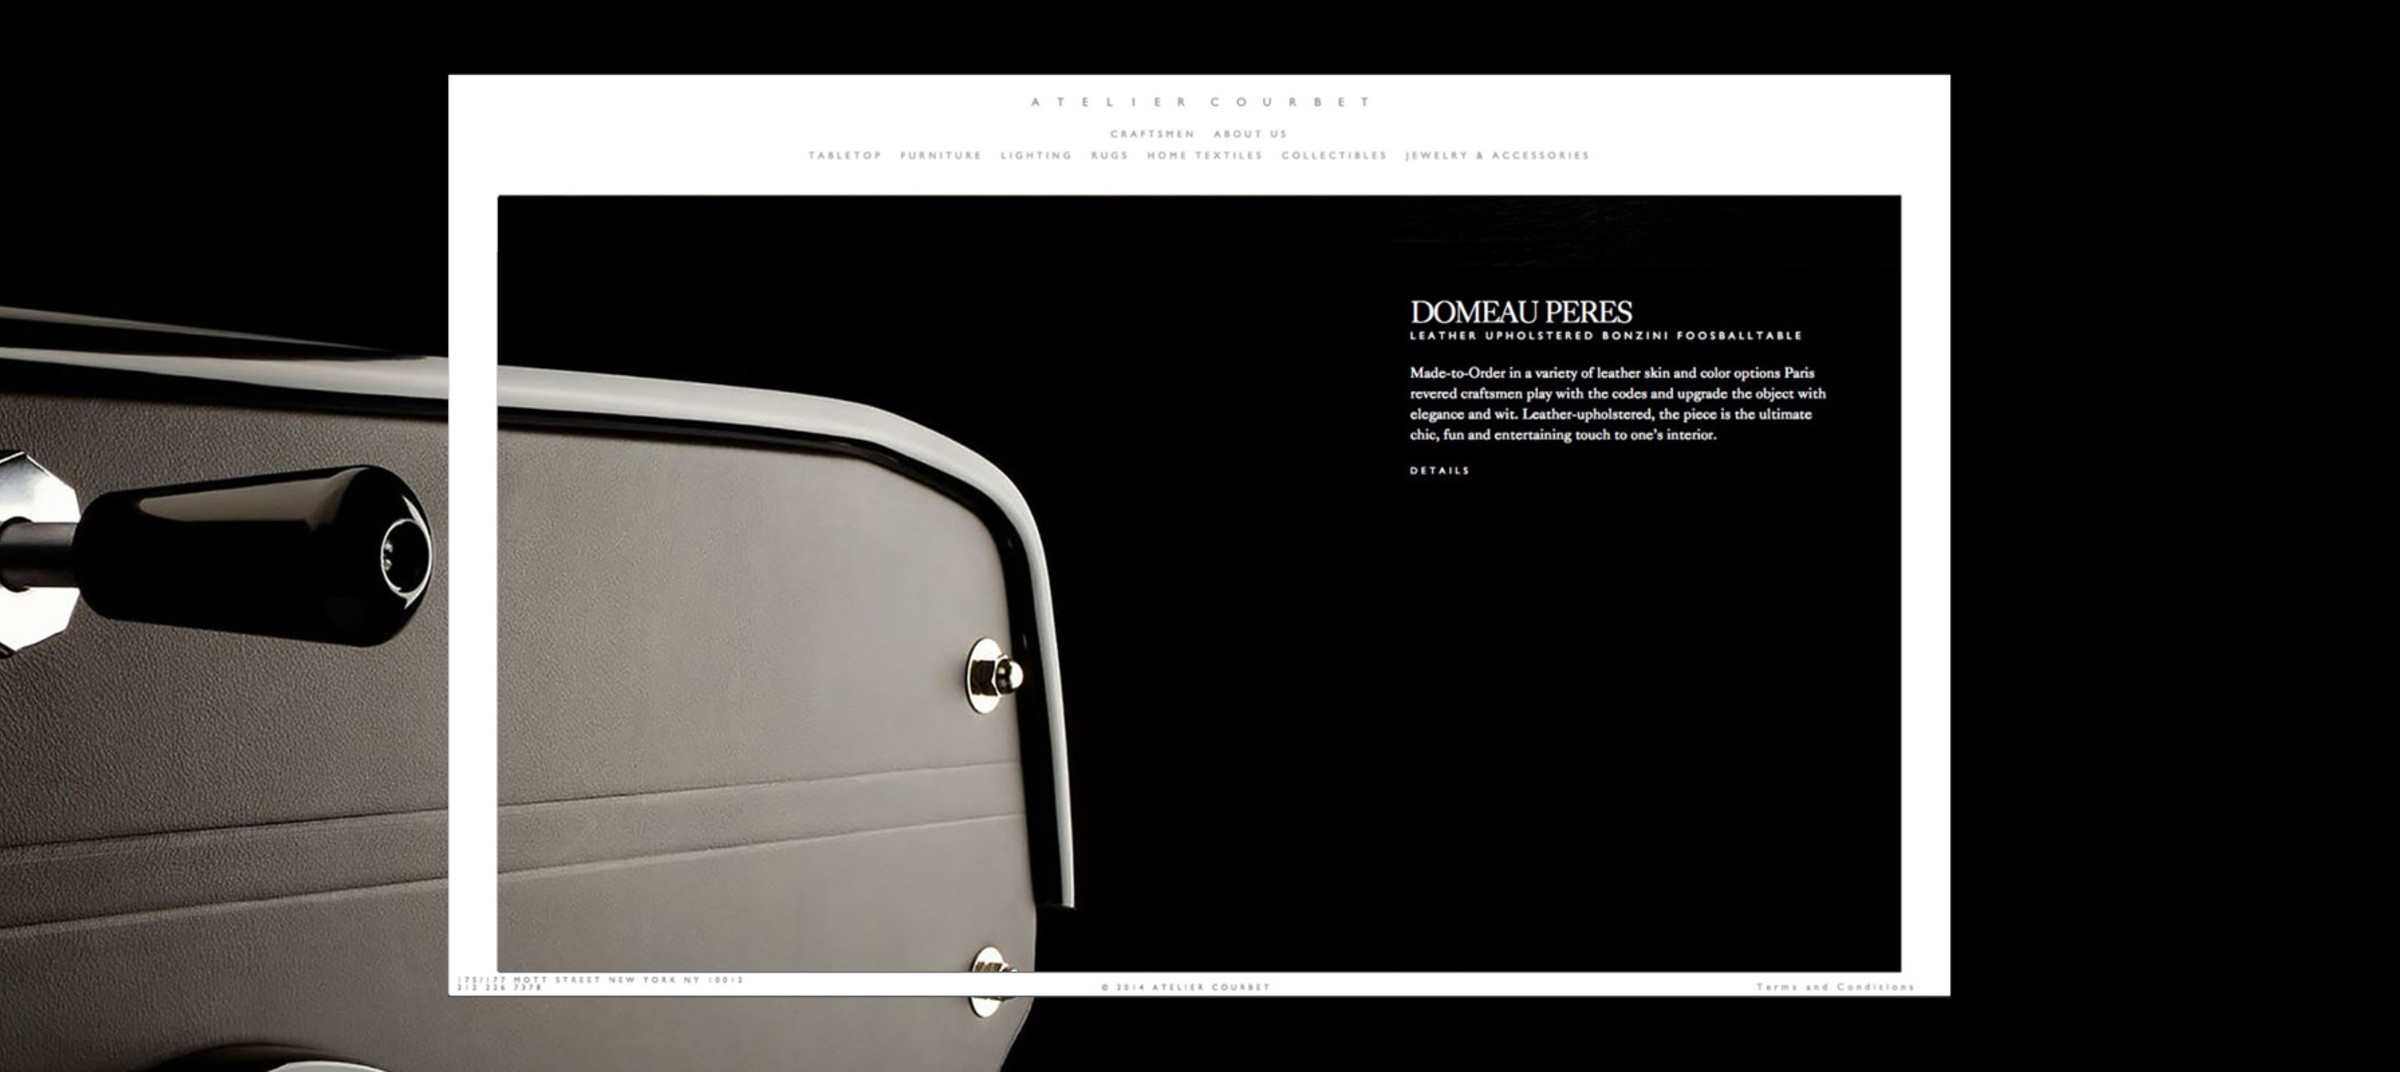 Atelier Courbet's online e-commerce shop preview with logo and brand mark designed by DTE